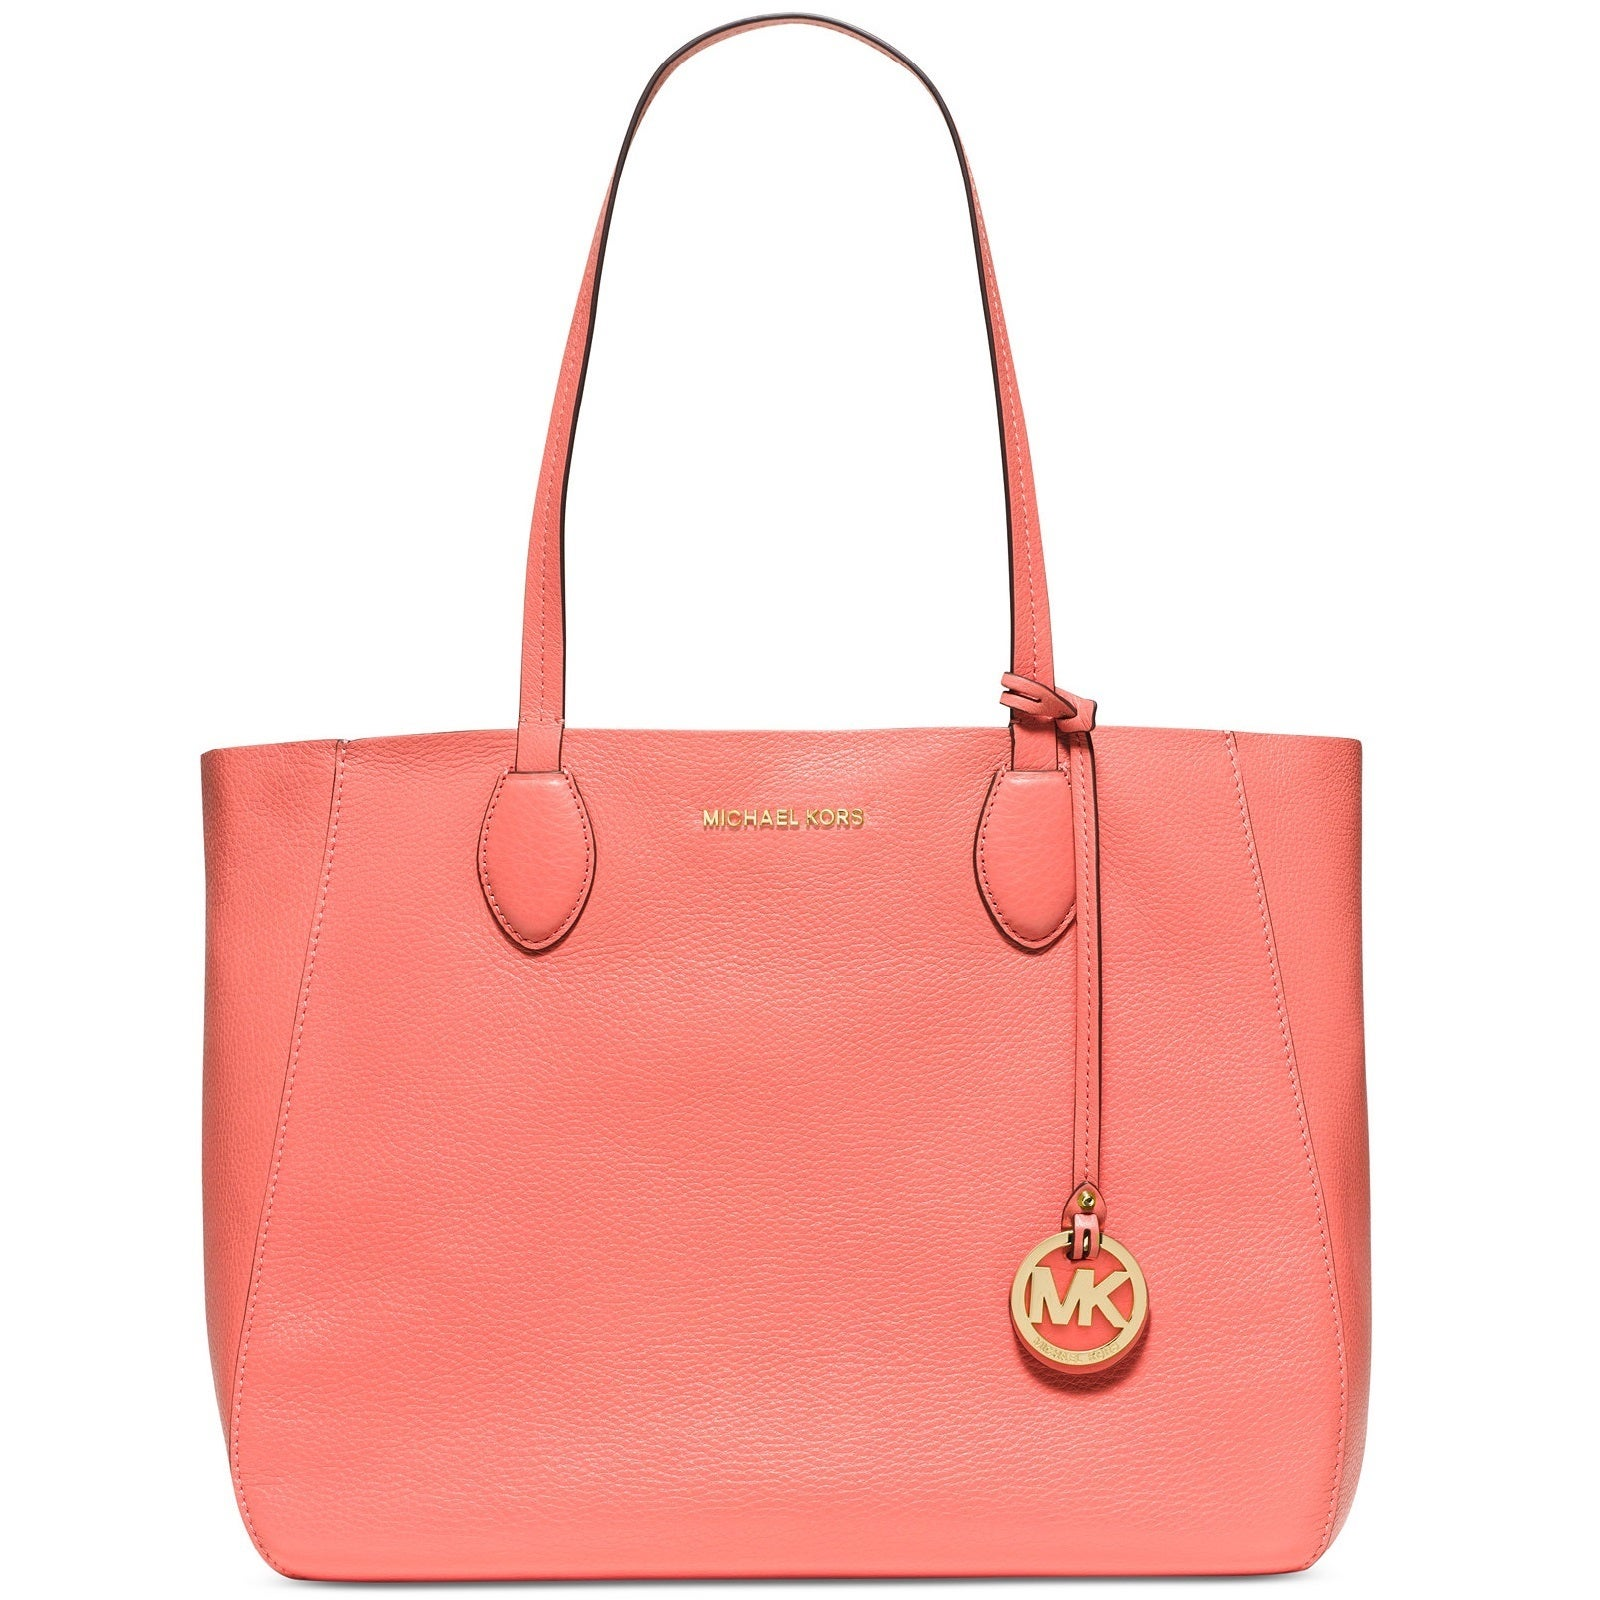 c8dba64a9092 Shop Michael Kors Mae Pink Grapefruit/Pale Gold East West Leather Tote Bag  - On Sale - Free Shipping Today - Overstock - 12020666